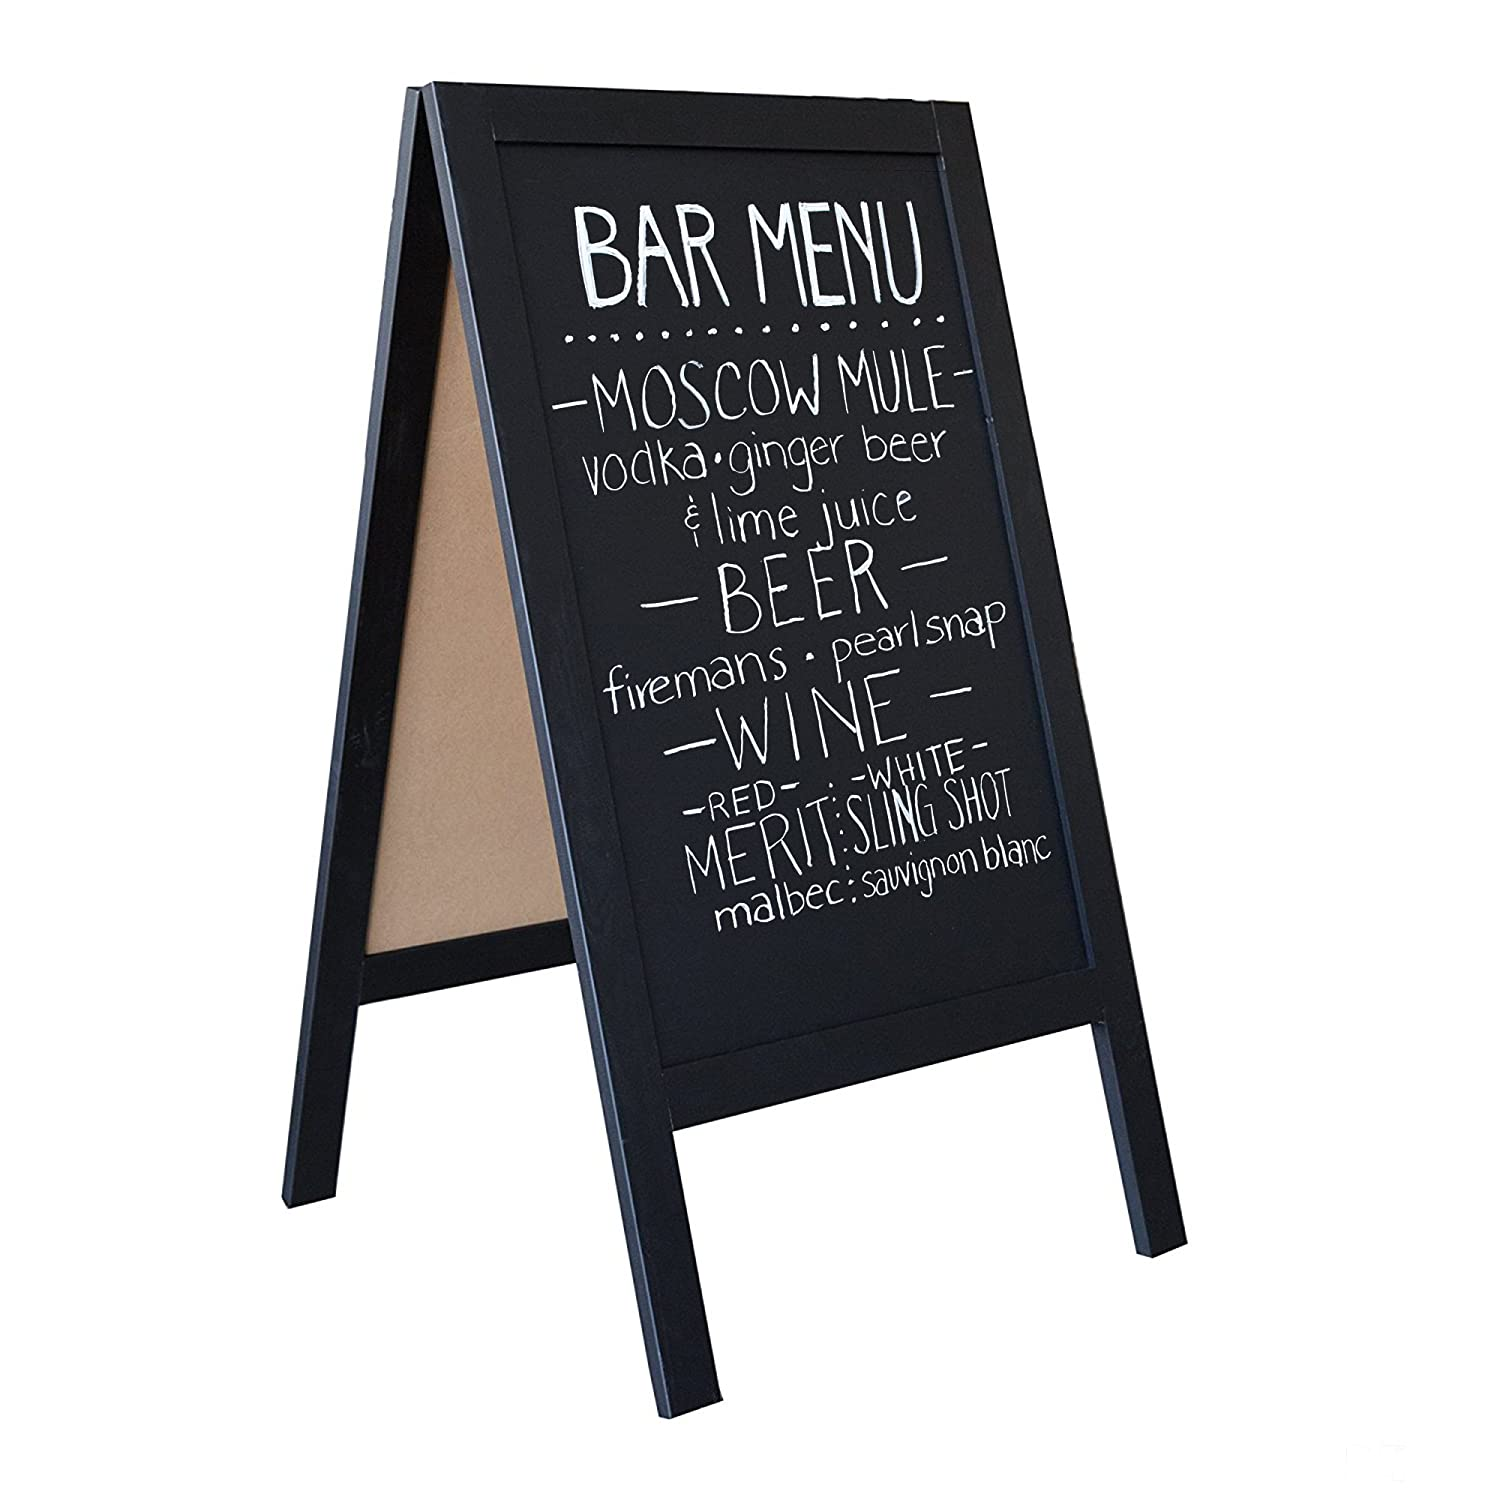 Wooden A-Frame Sign with Eraser & Chalk - 40 x 20 Magnetic Sidewalk Chalkboard – Sturdy Freestanding Sandwich Board Menu Display for Restaurant, Business or Wedding Ilyapa